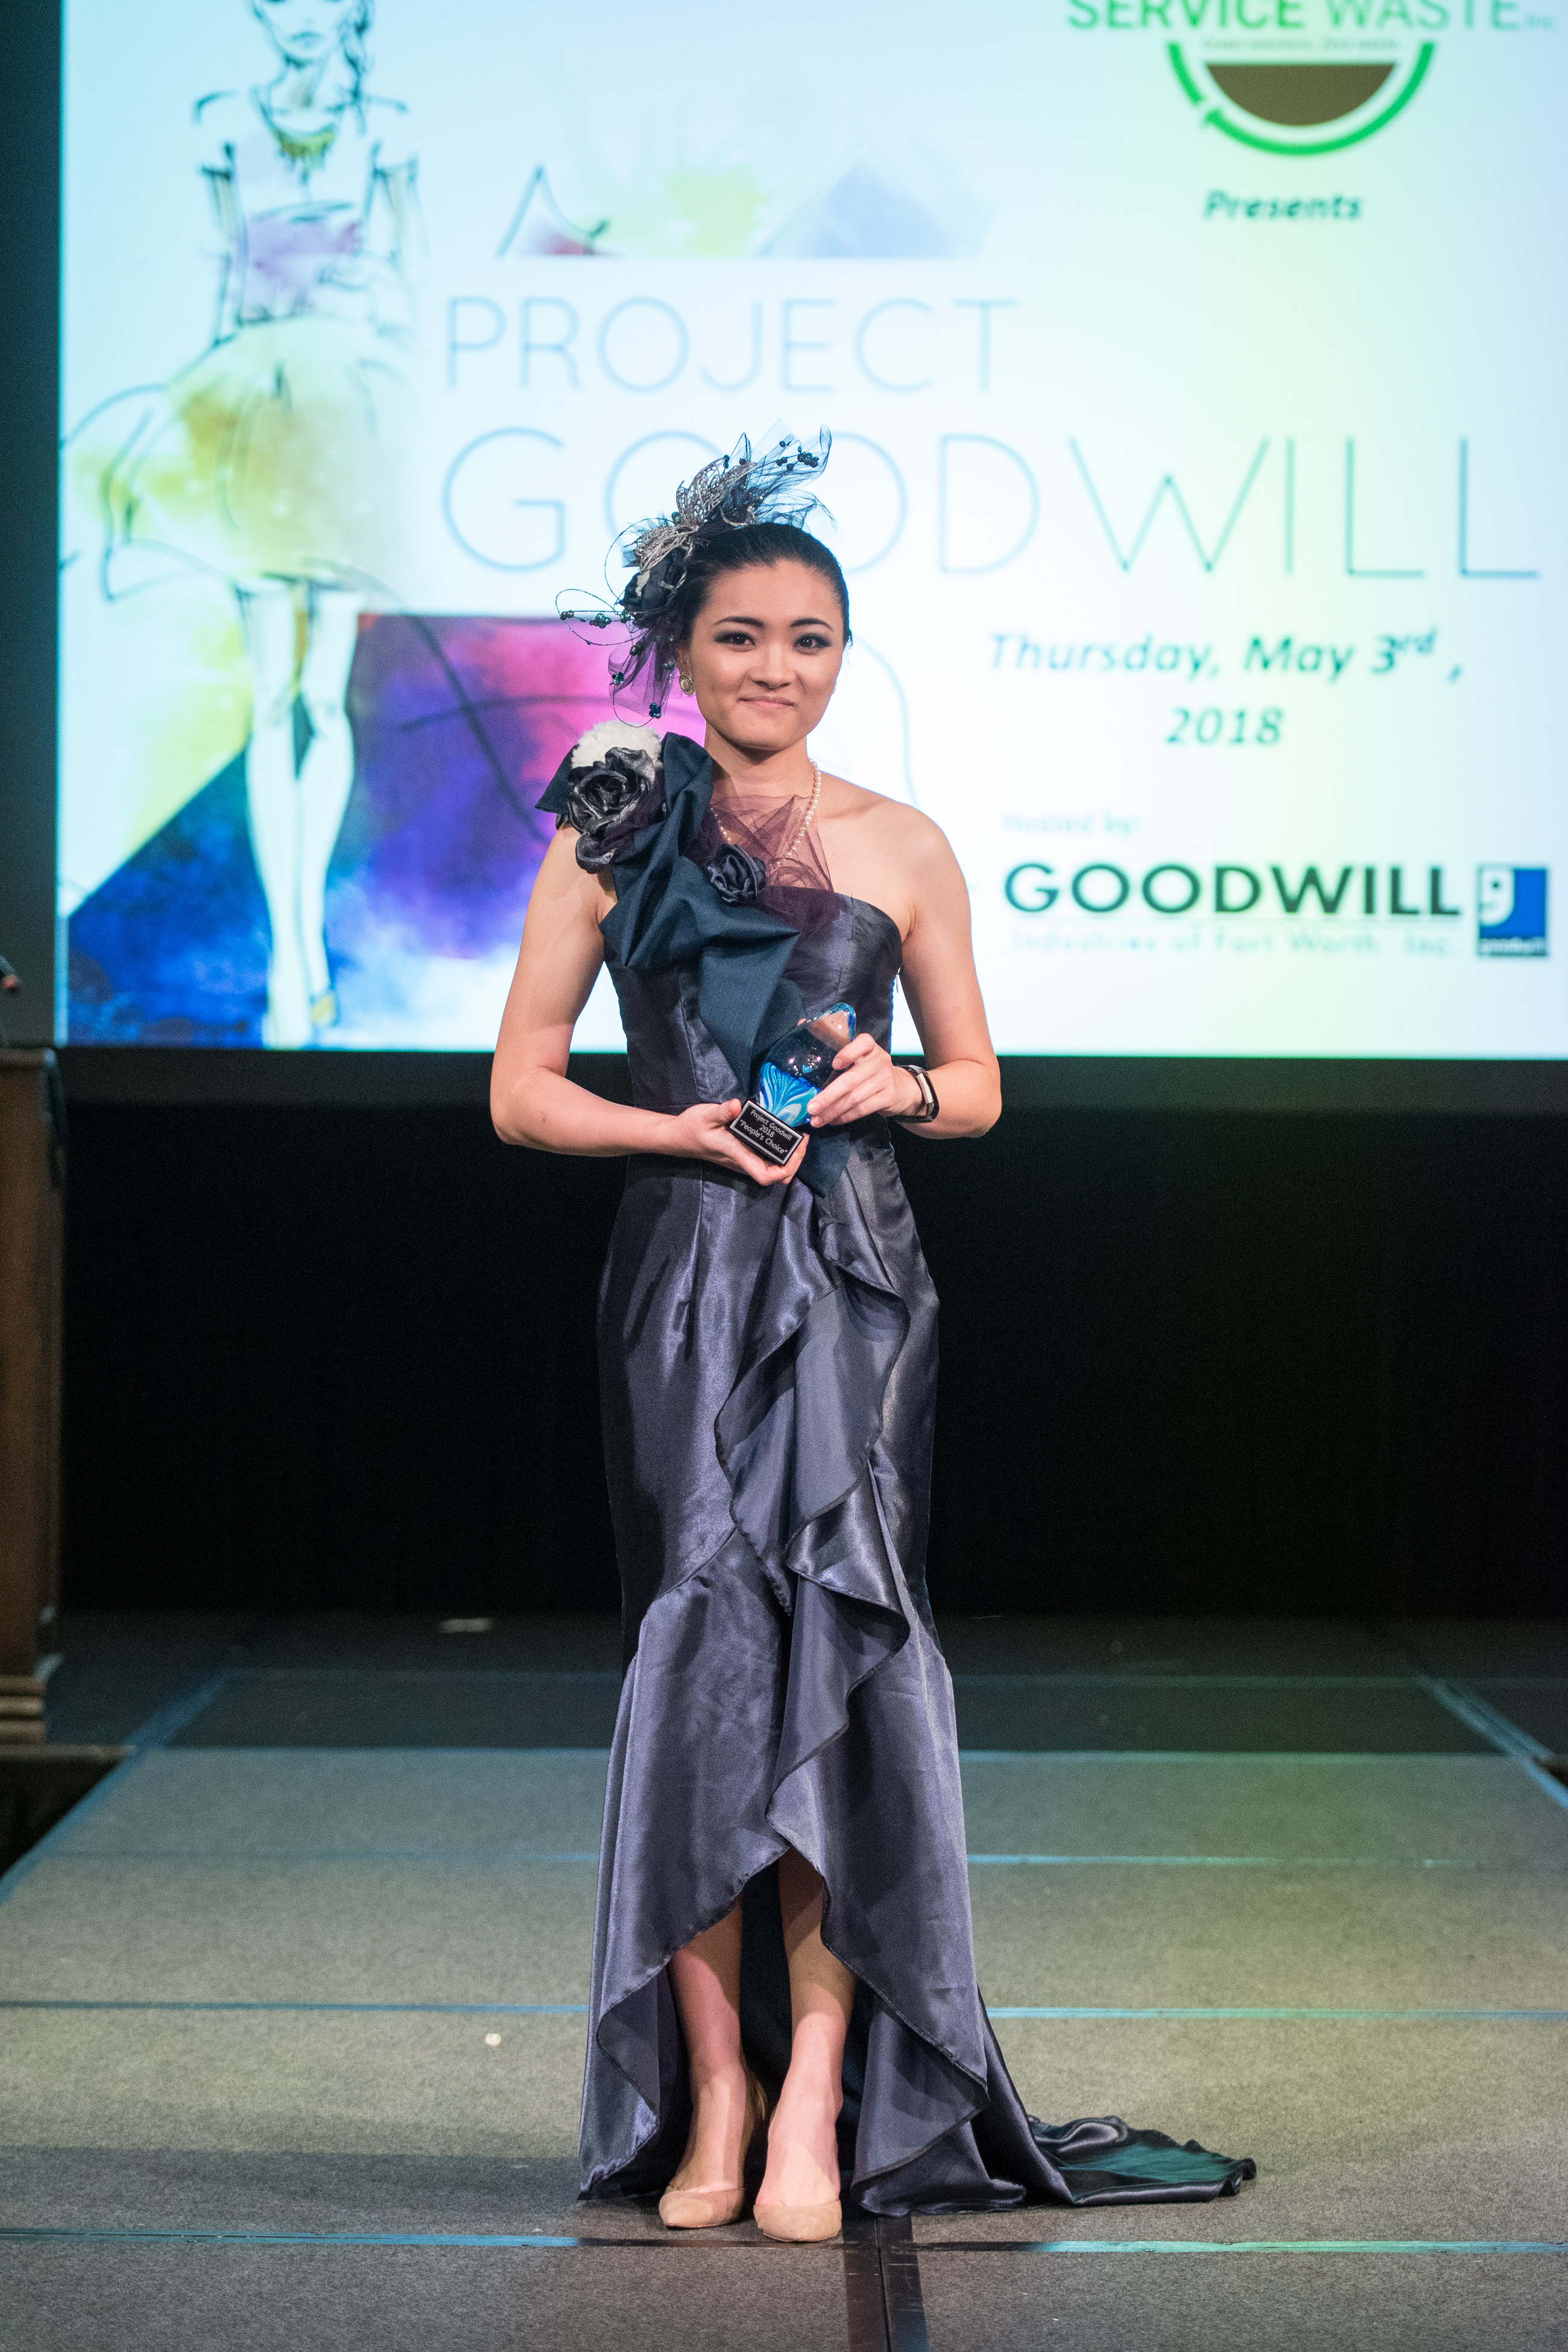 People's Choice - Designer and Model Shen Xu